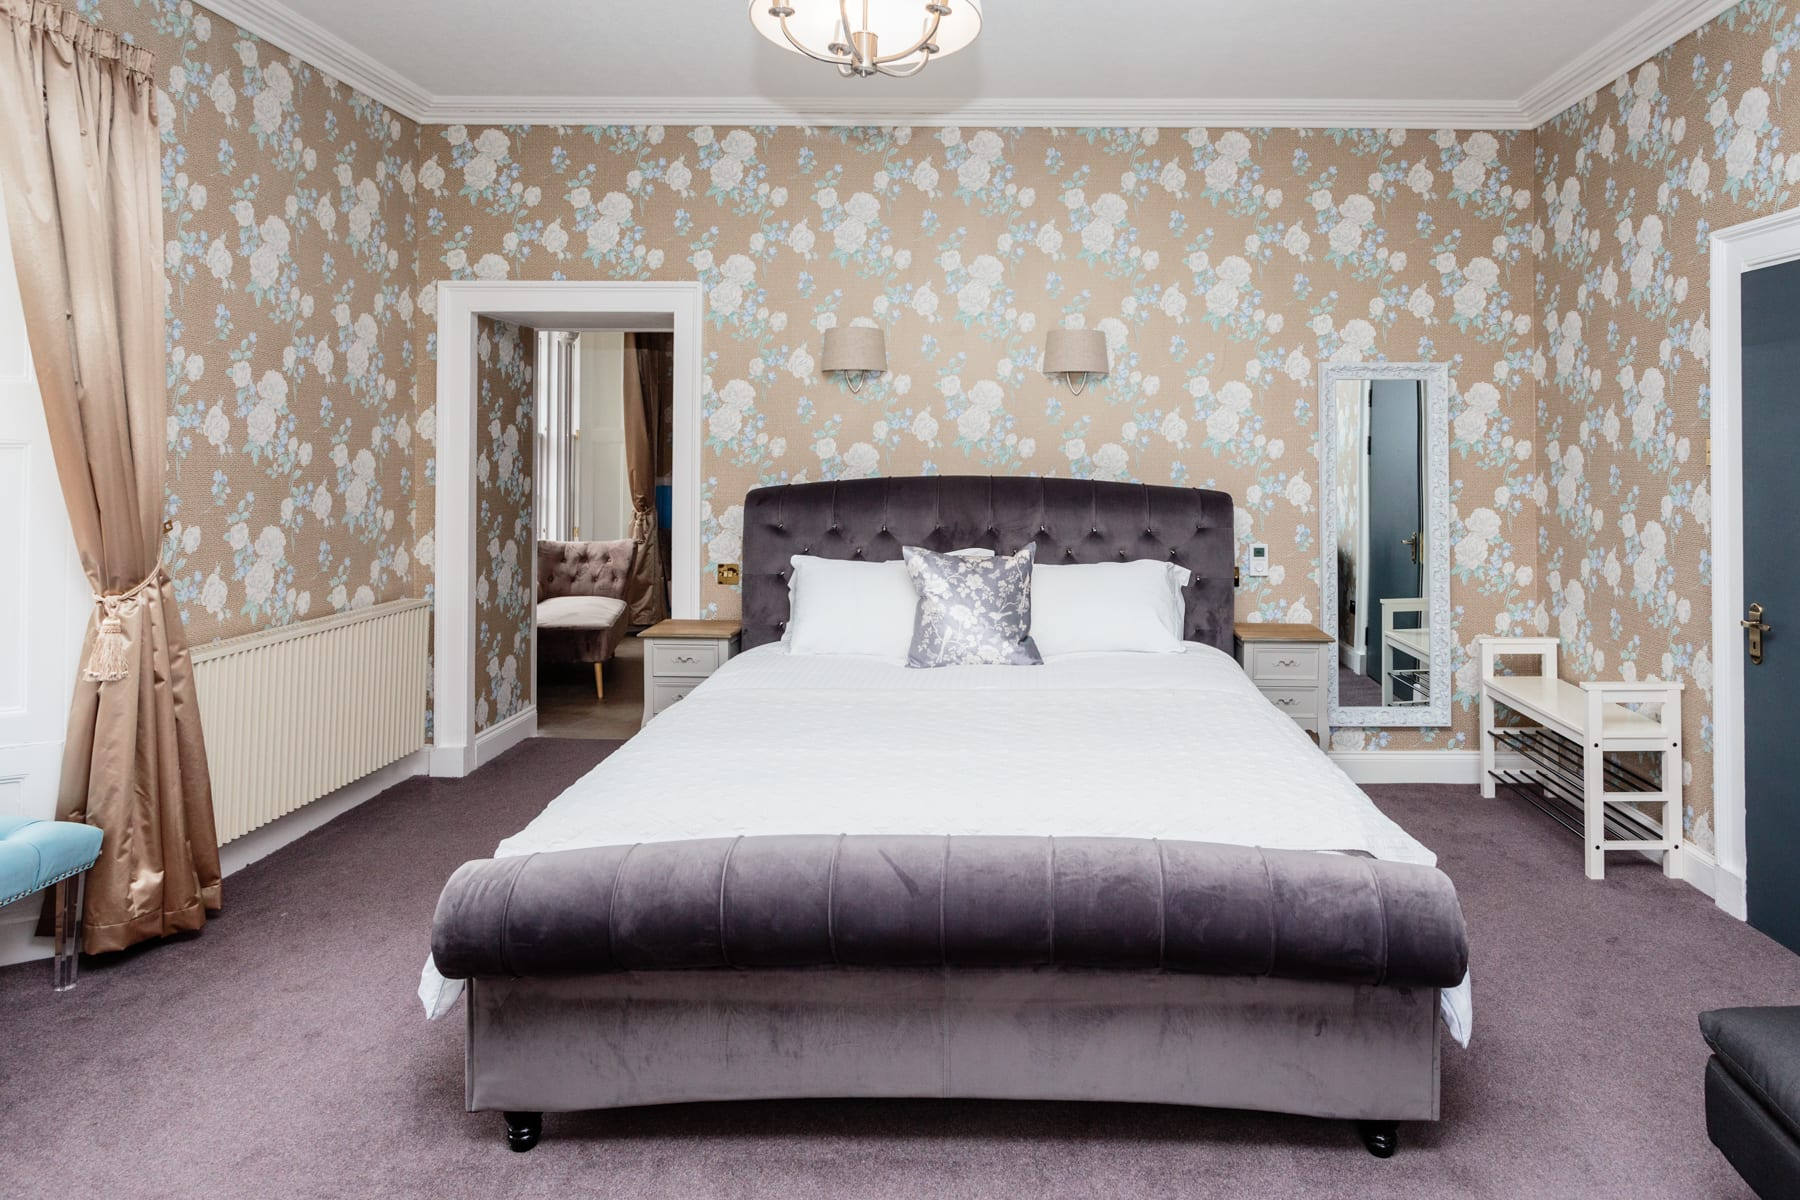 Lunan Bay Hotel rooms  Jun